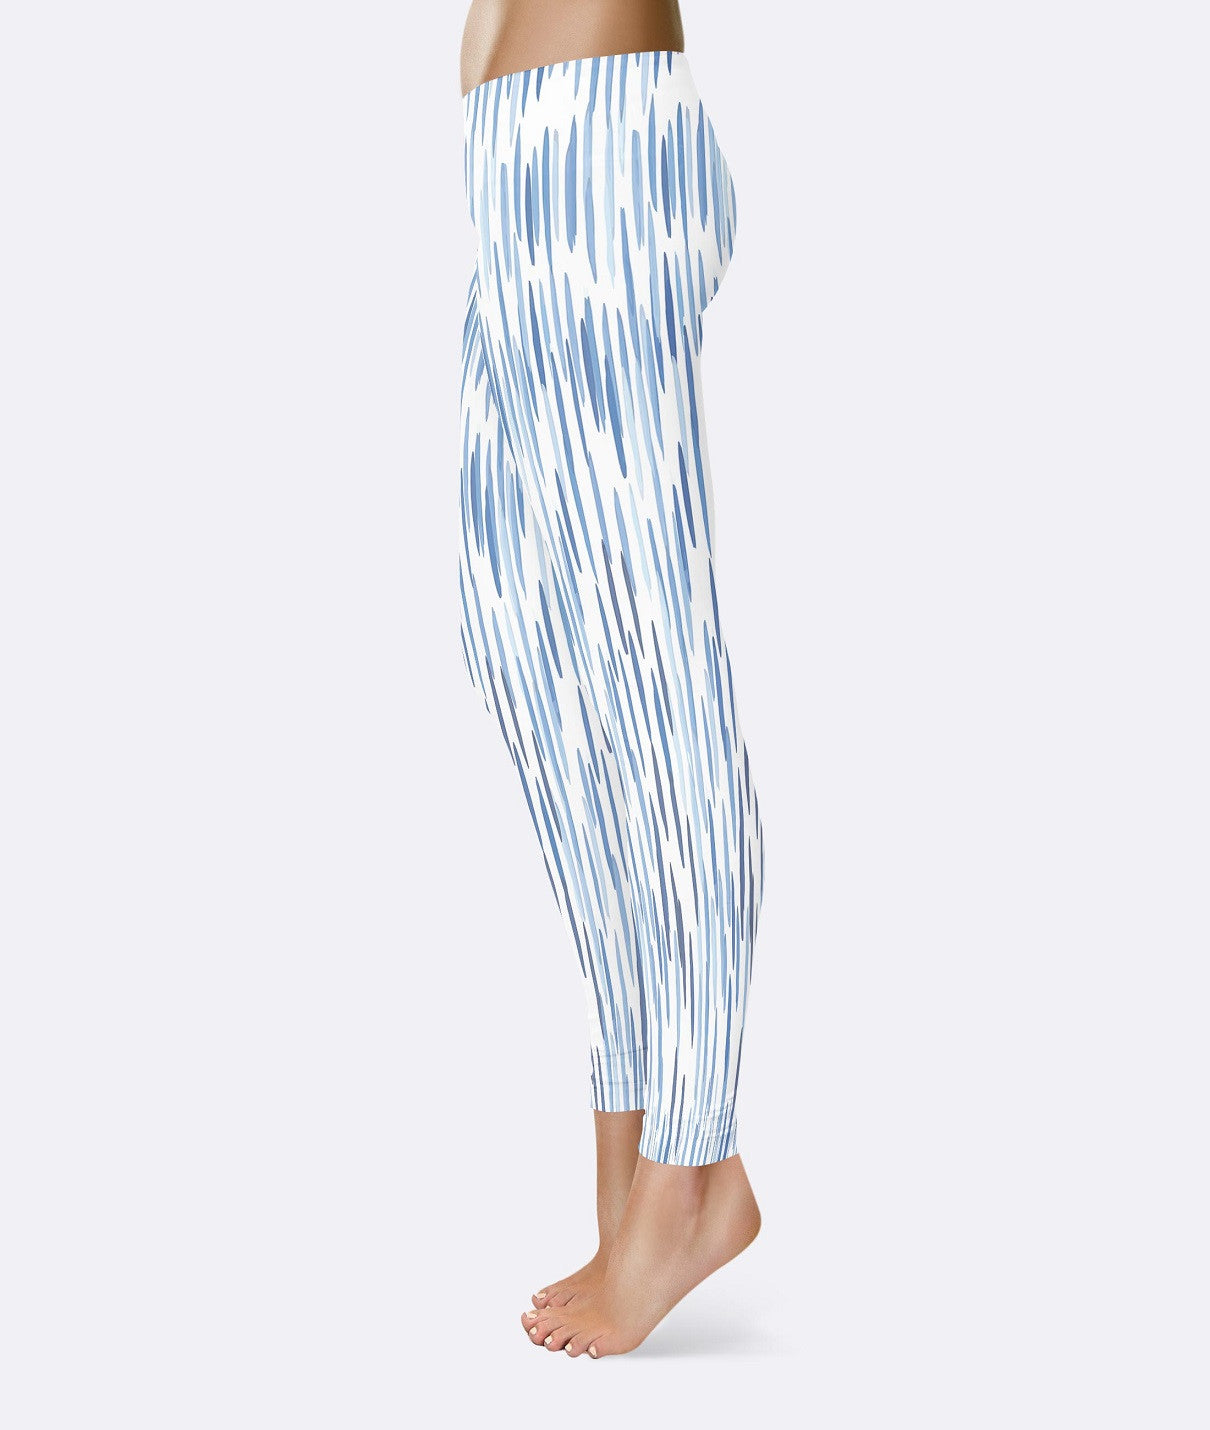 Look! - RDKL LEGGING#34 - RDKL-U  - 1